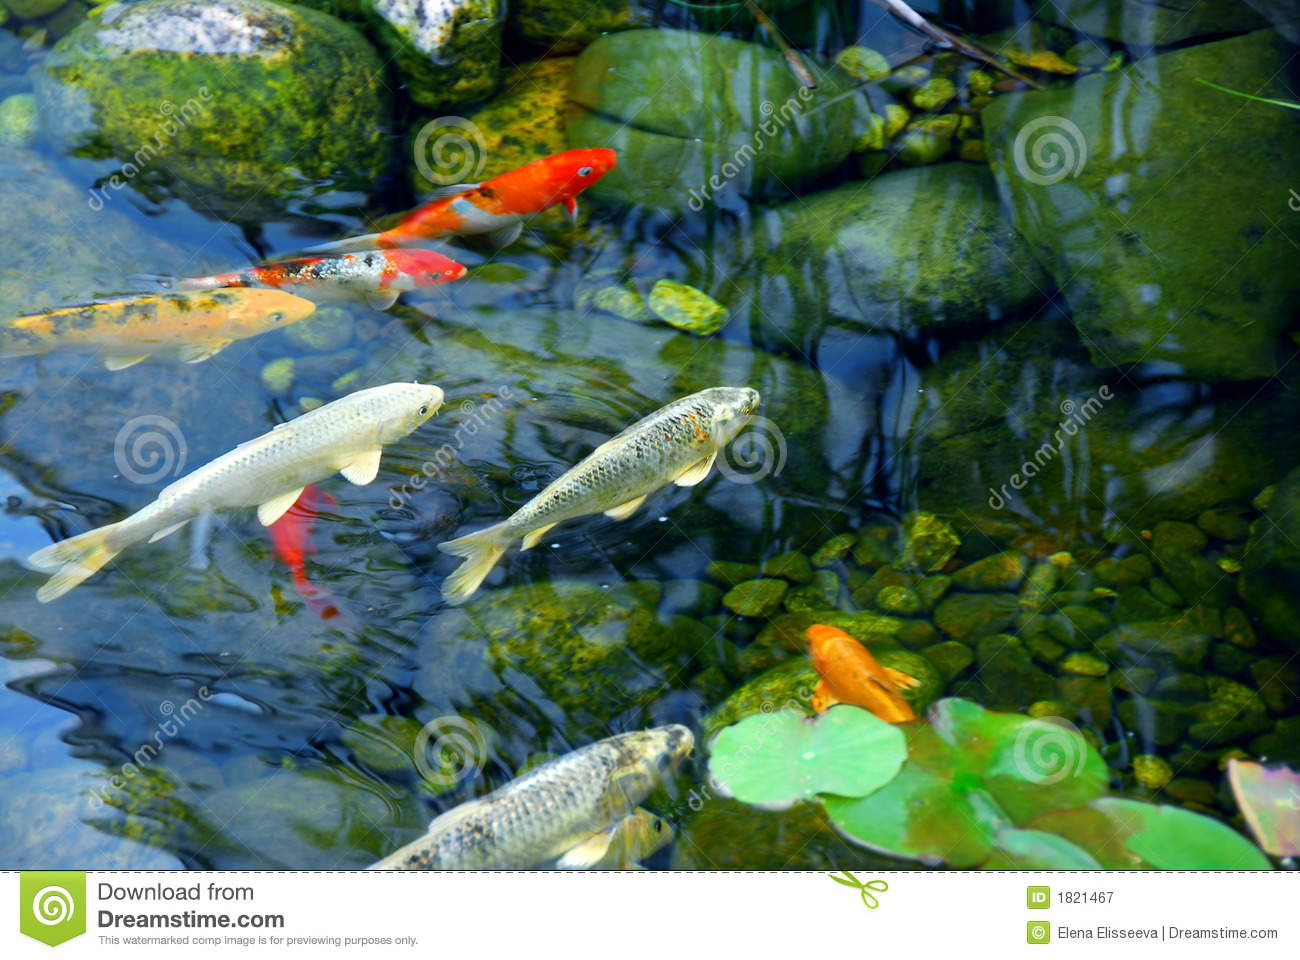 Koi pond stock image image of asia colorful plant for Koi fish in pool